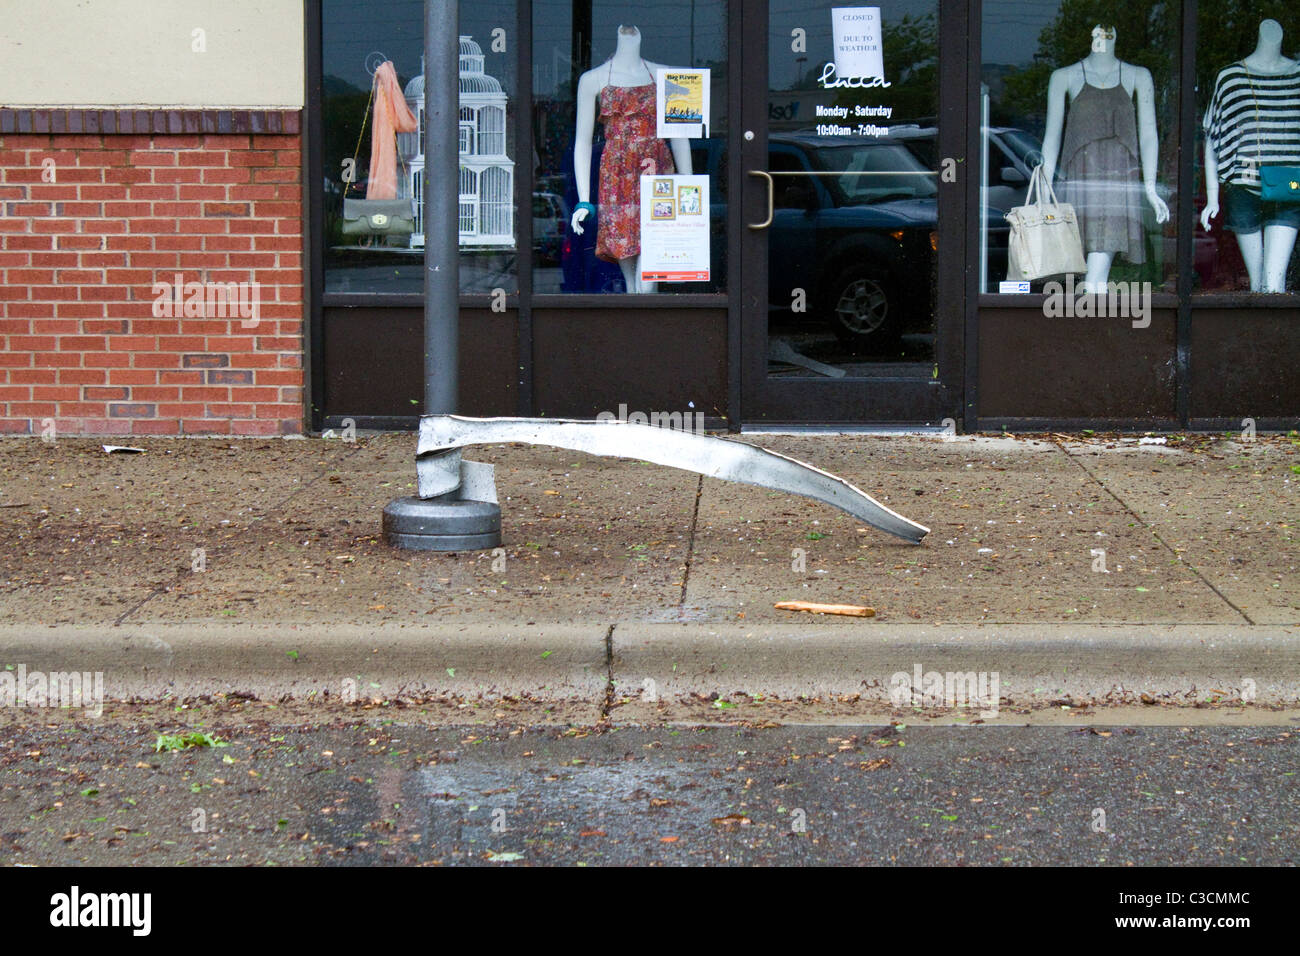 Tornado Damage in Tuscaloosa Alabama from the April 27th 2011 Tornado outbreak - Stock Image